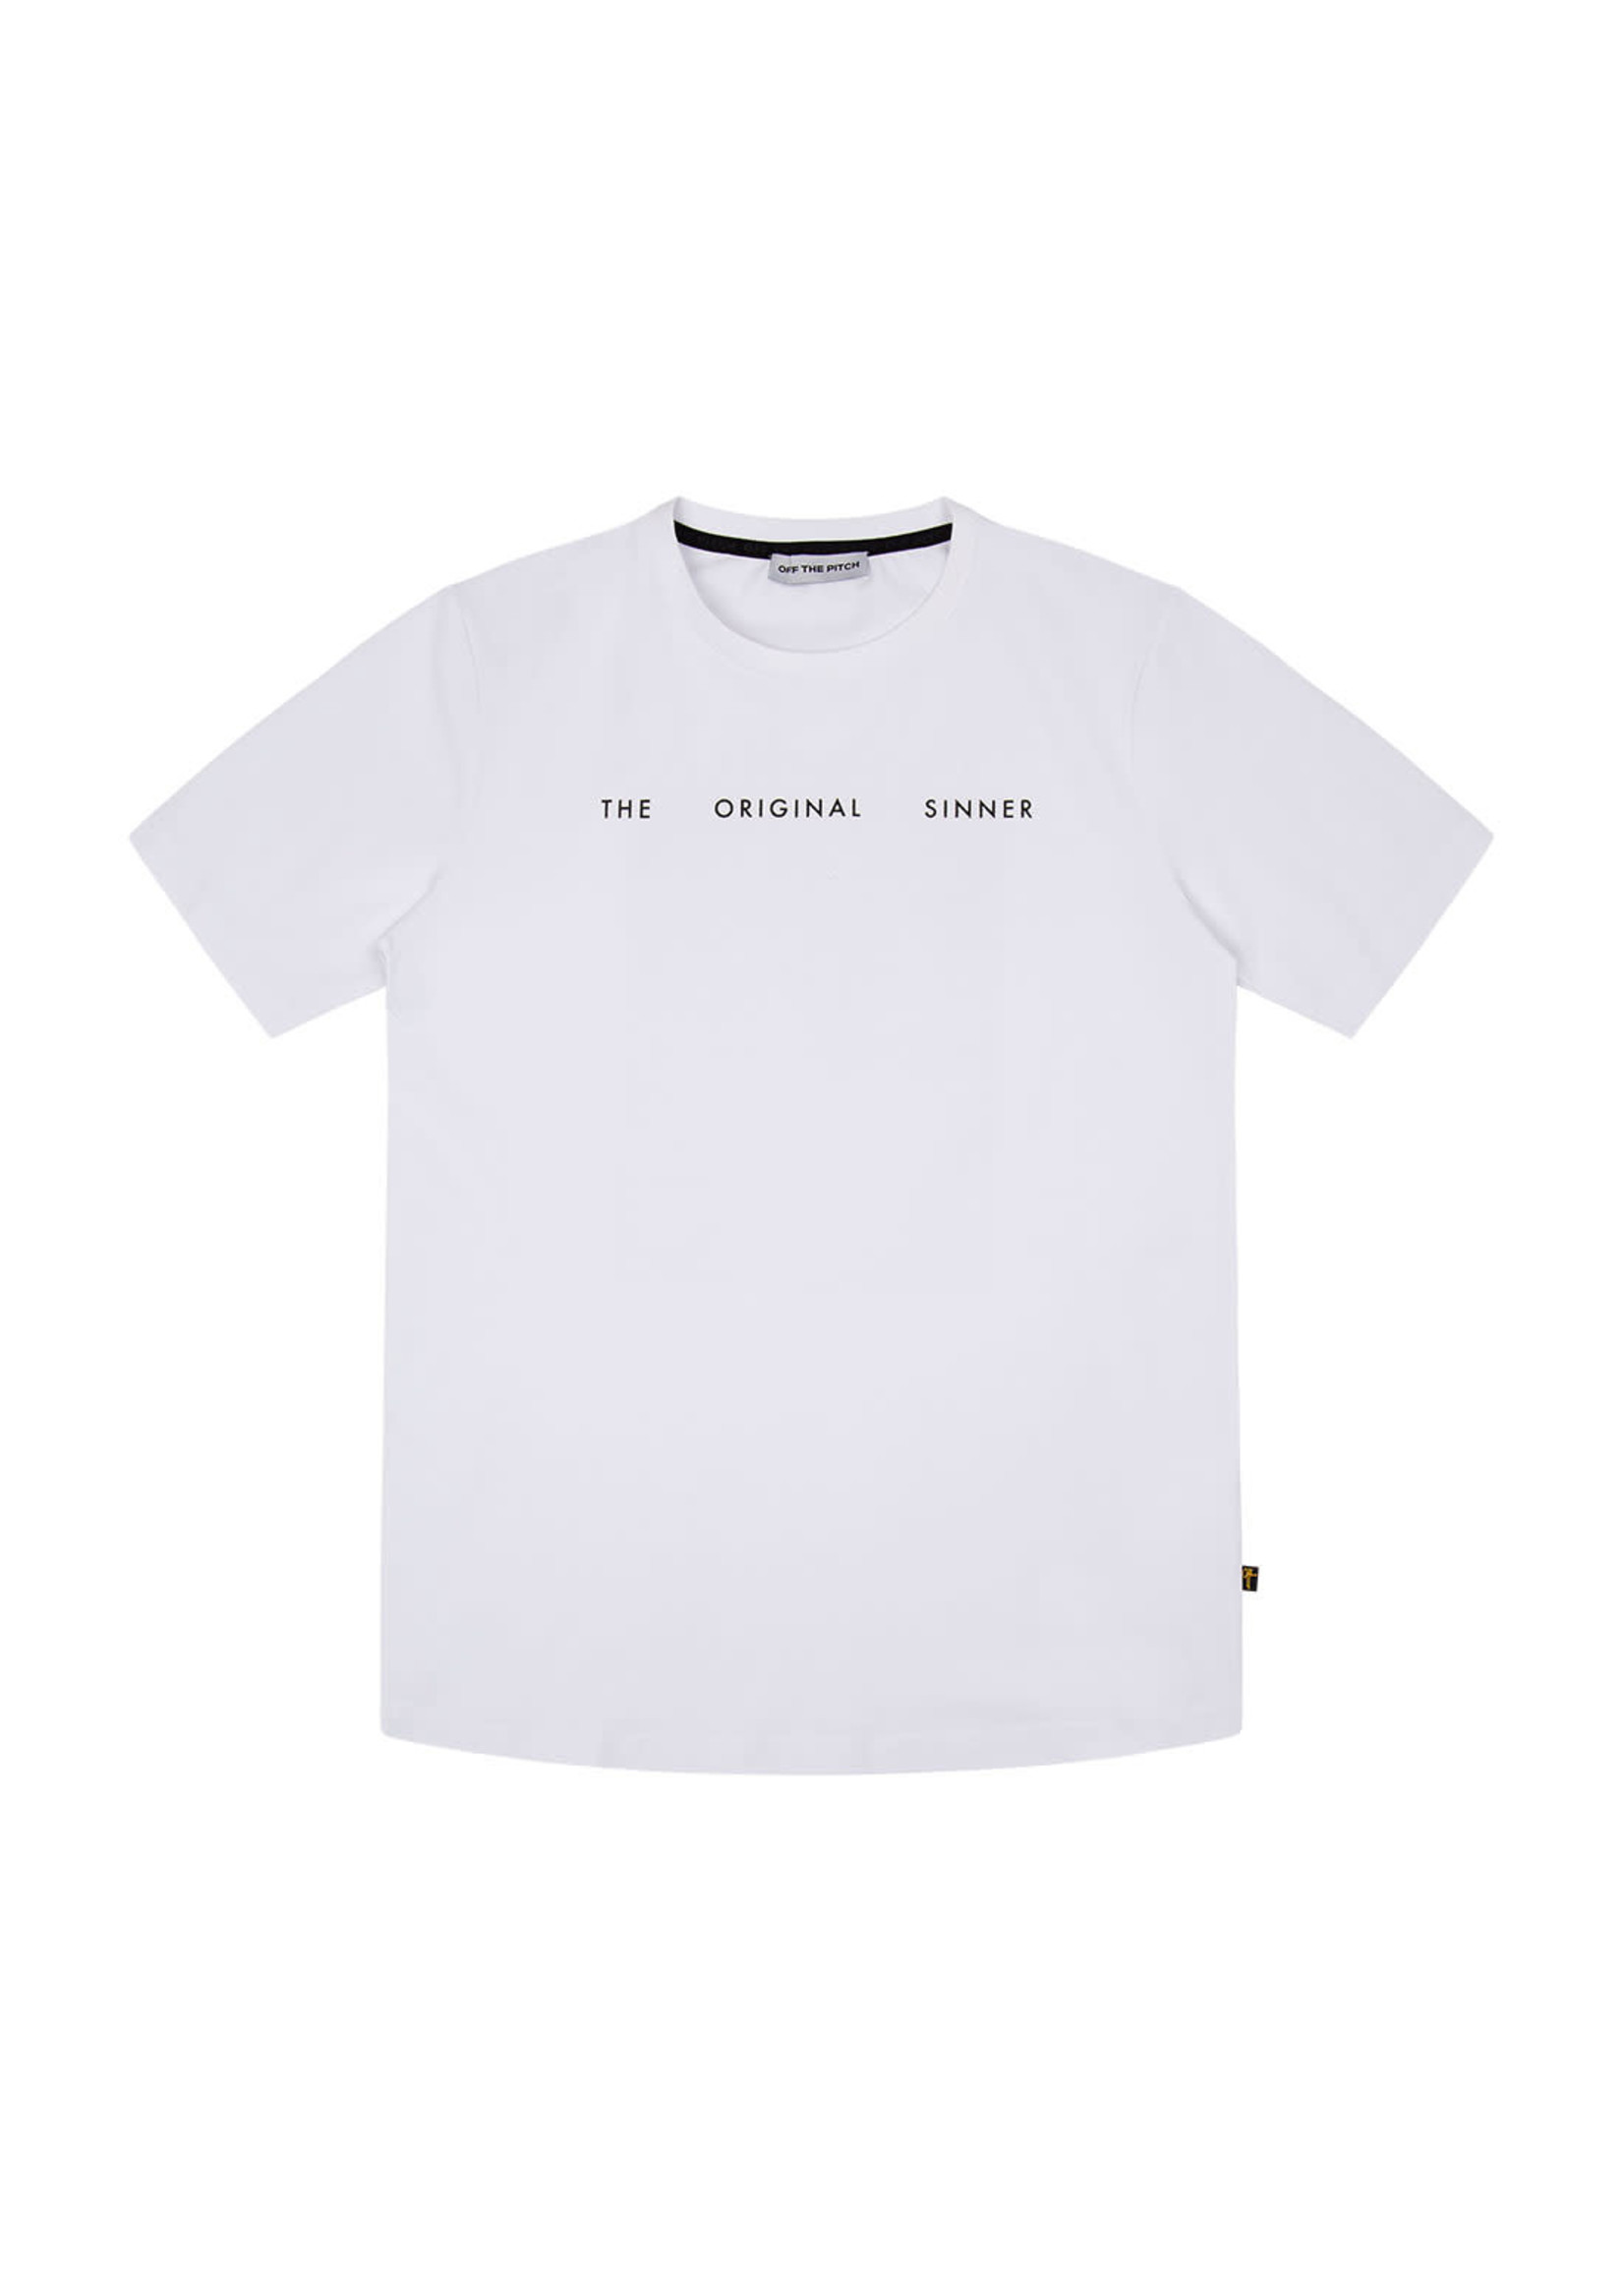 OFF THE PITCH Off The Pitch The Sinner Tee - White